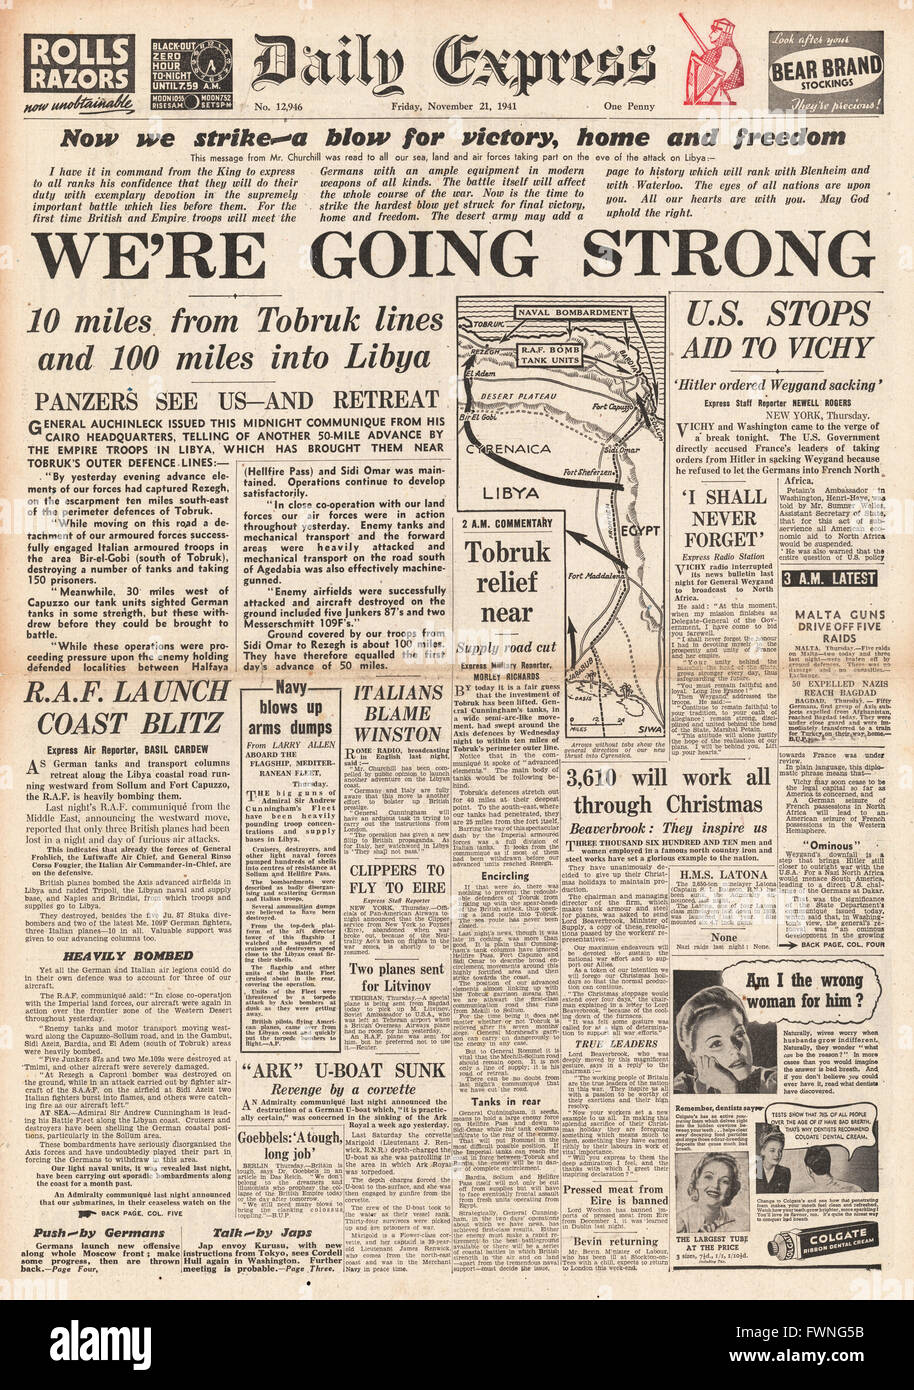 1941 front page Daily Express British Forces advance in Libya - Stock Image